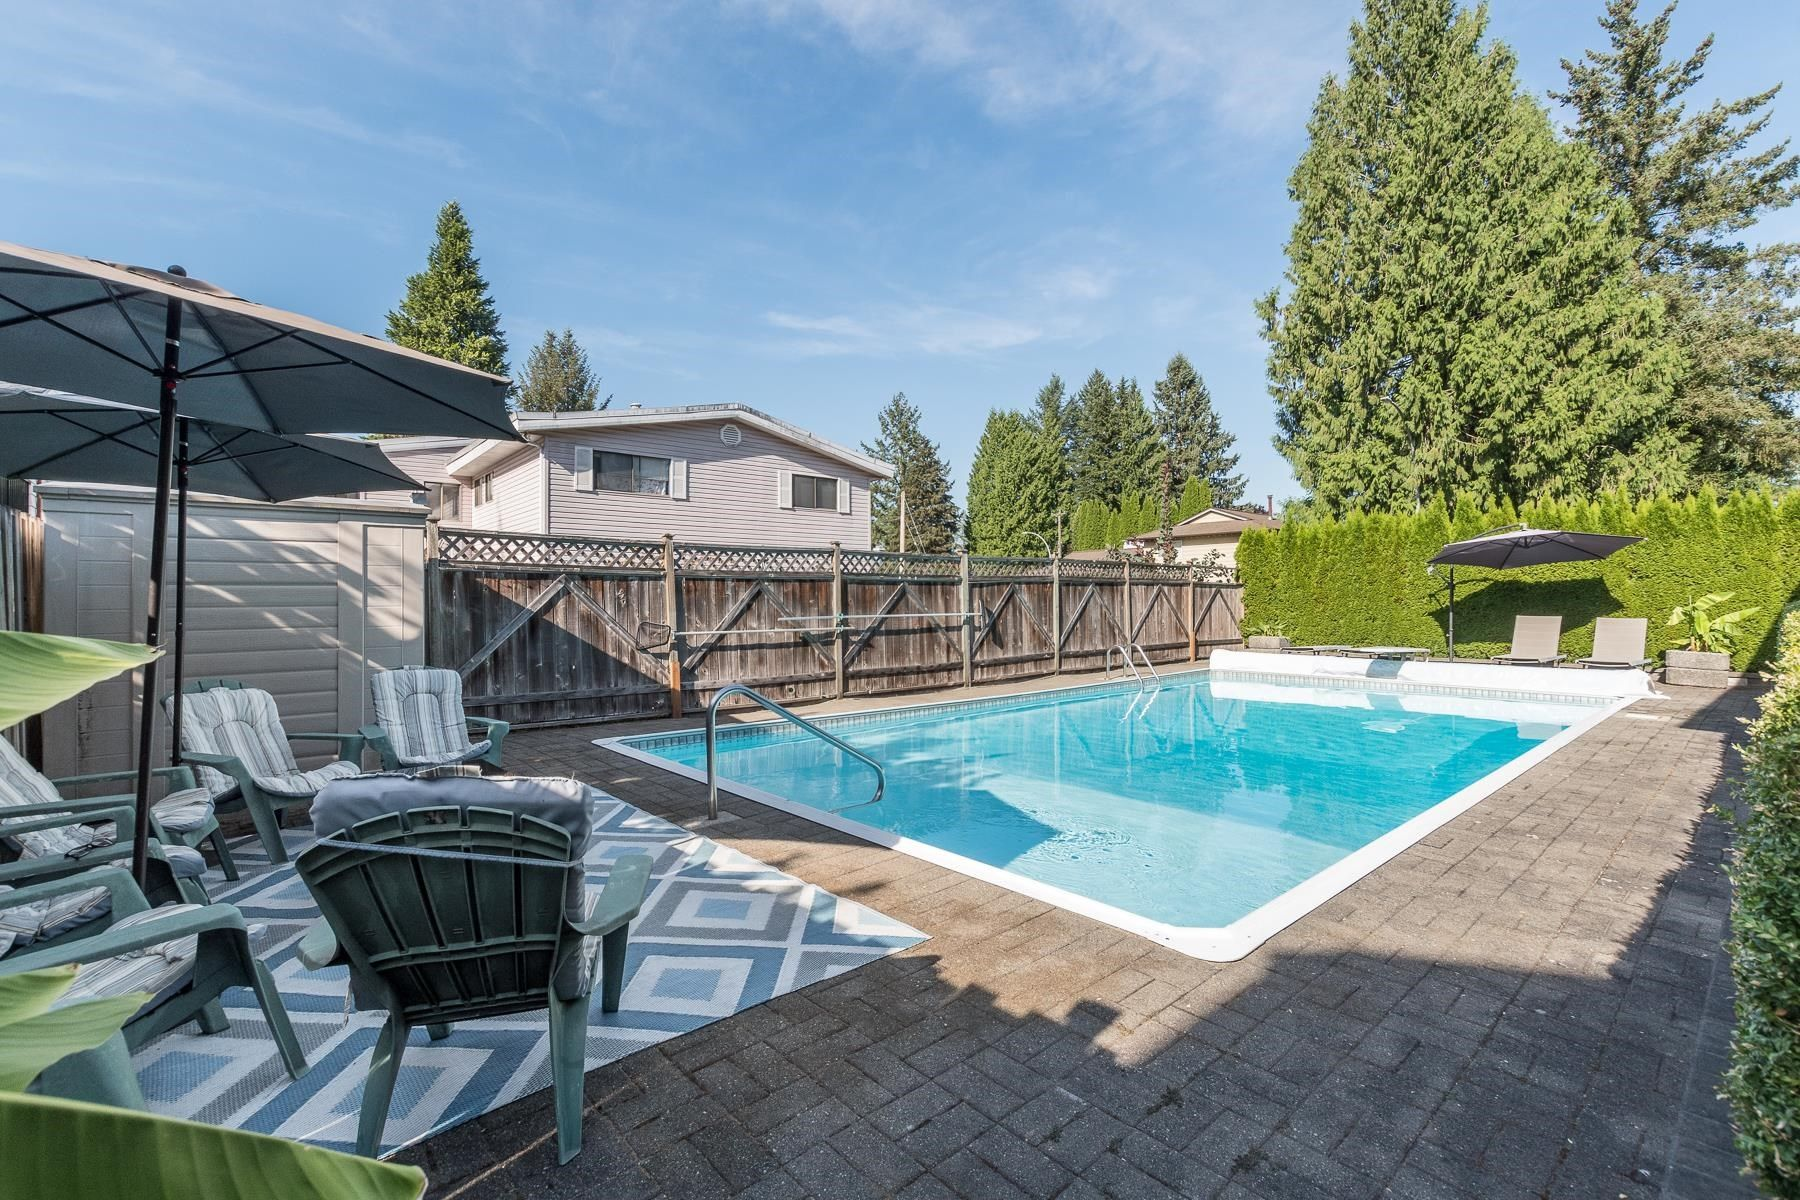 Photo 32: Photos: 3671 SOMERSET Street in Port Coquitlam: Lincoln Park PQ House for sale : MLS®# R2610216